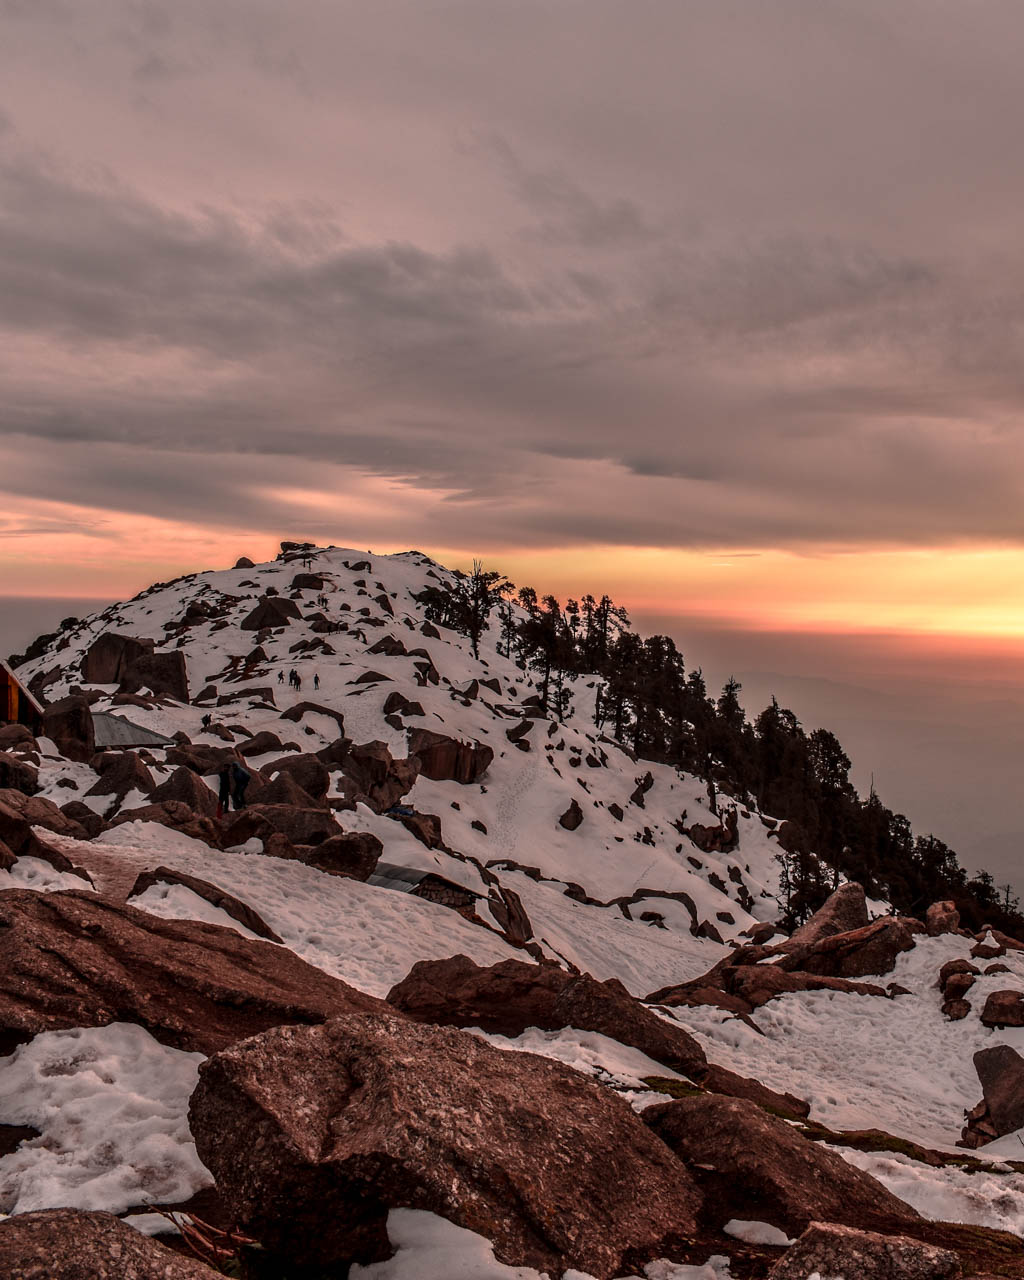 Camping at Triund hill